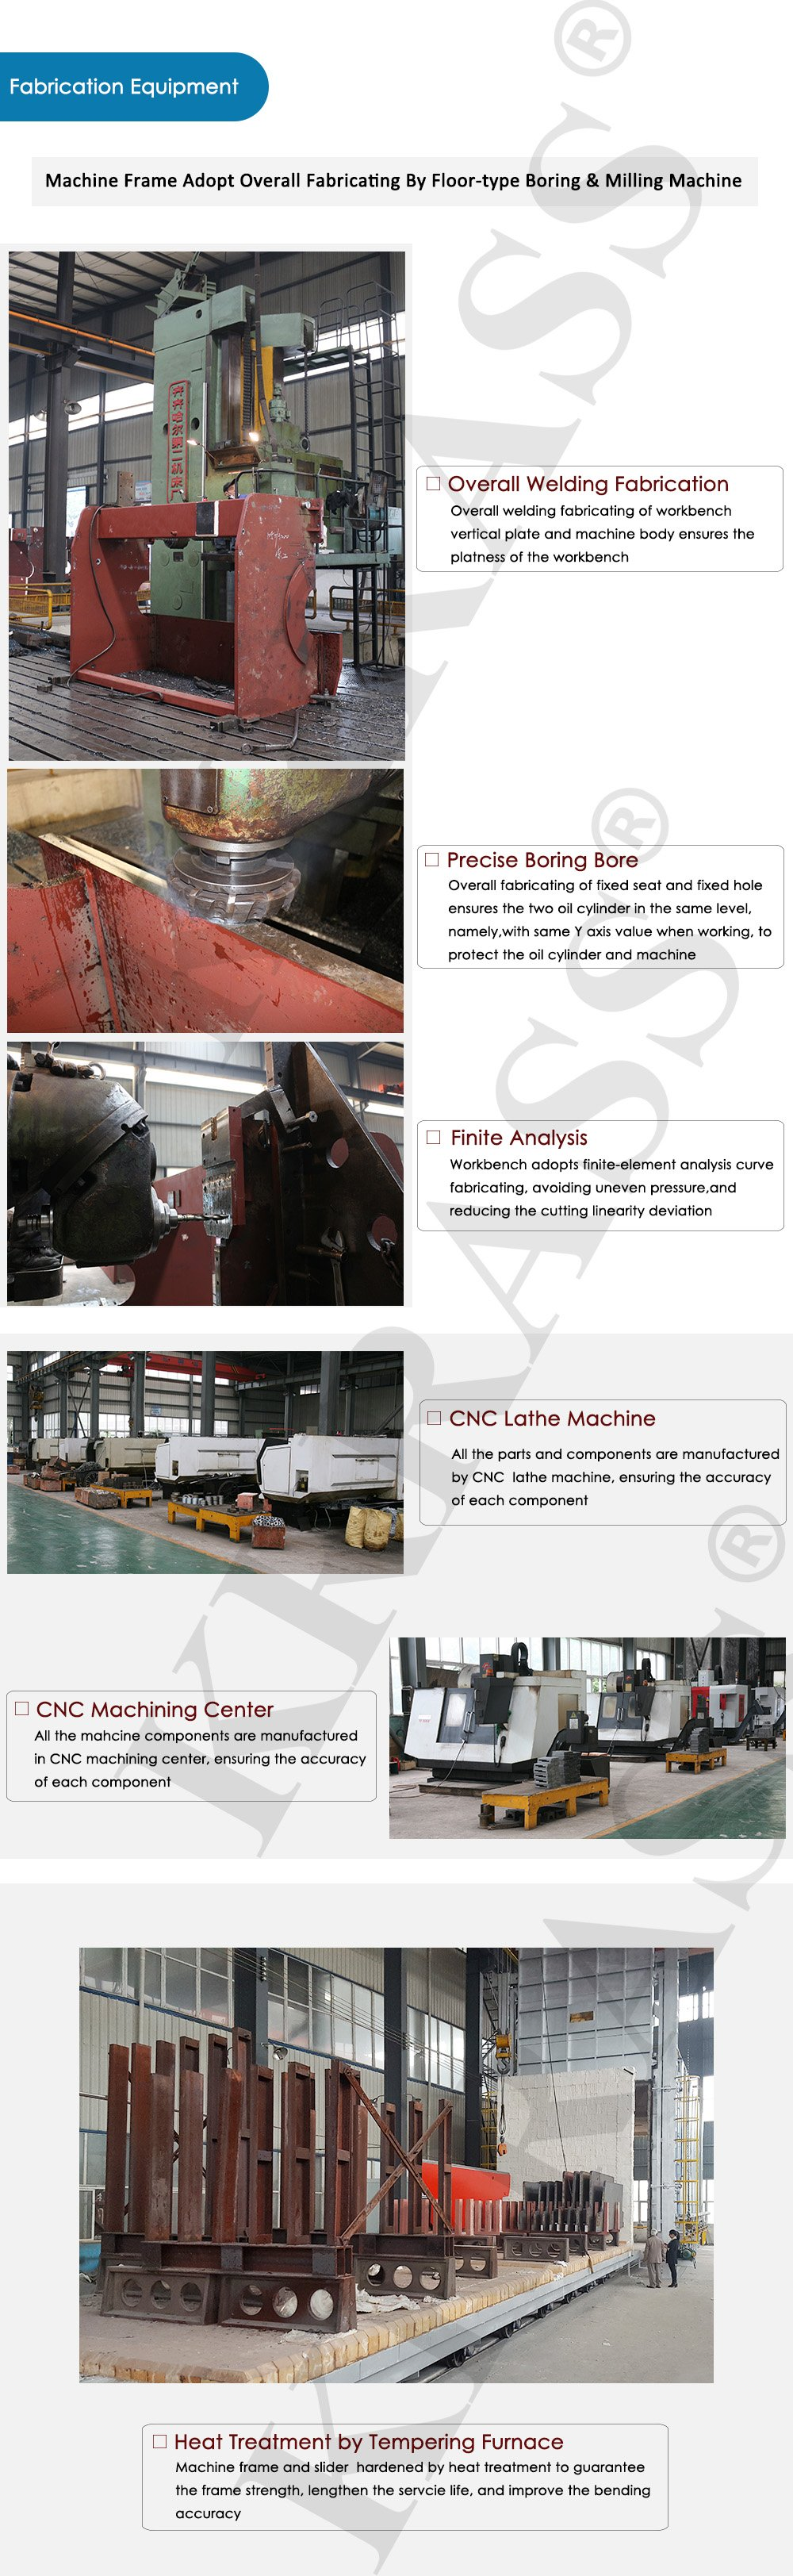 KRRASS-fabrication-equipment